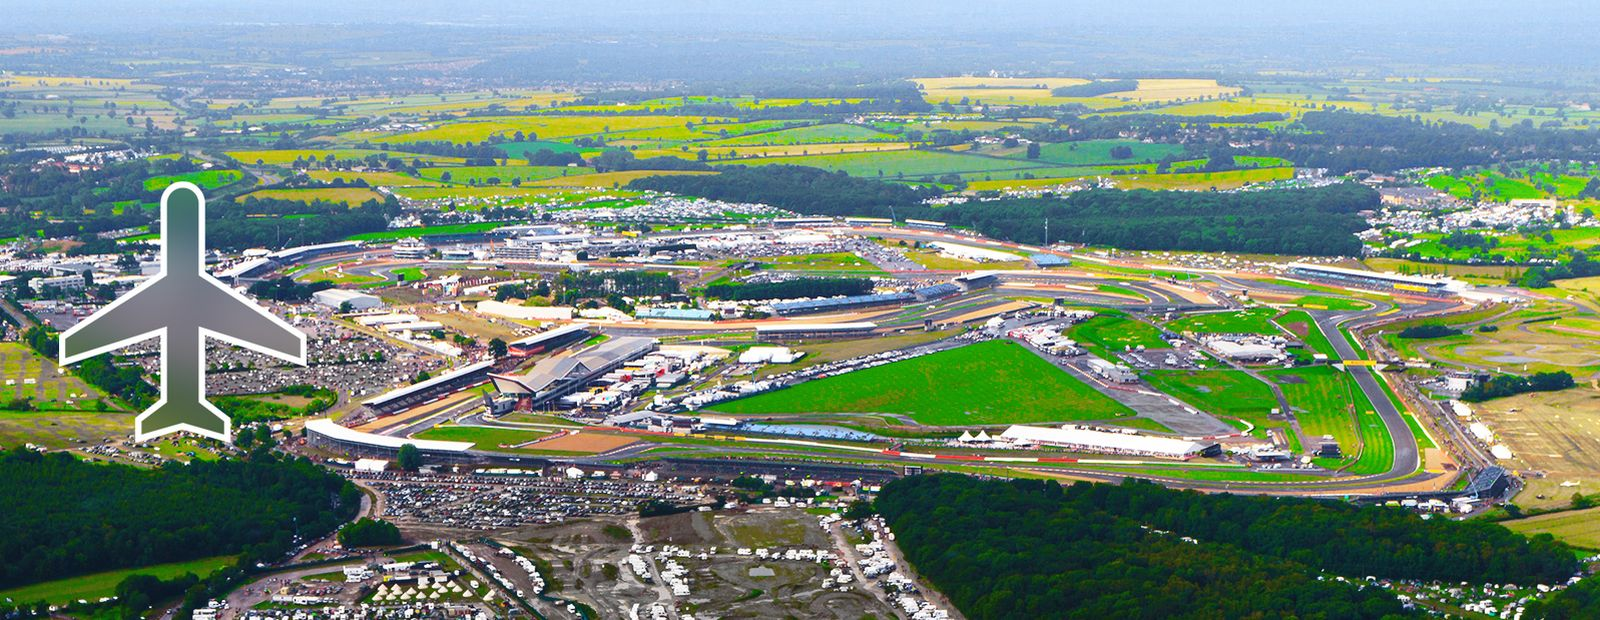 British GP Travel Guide